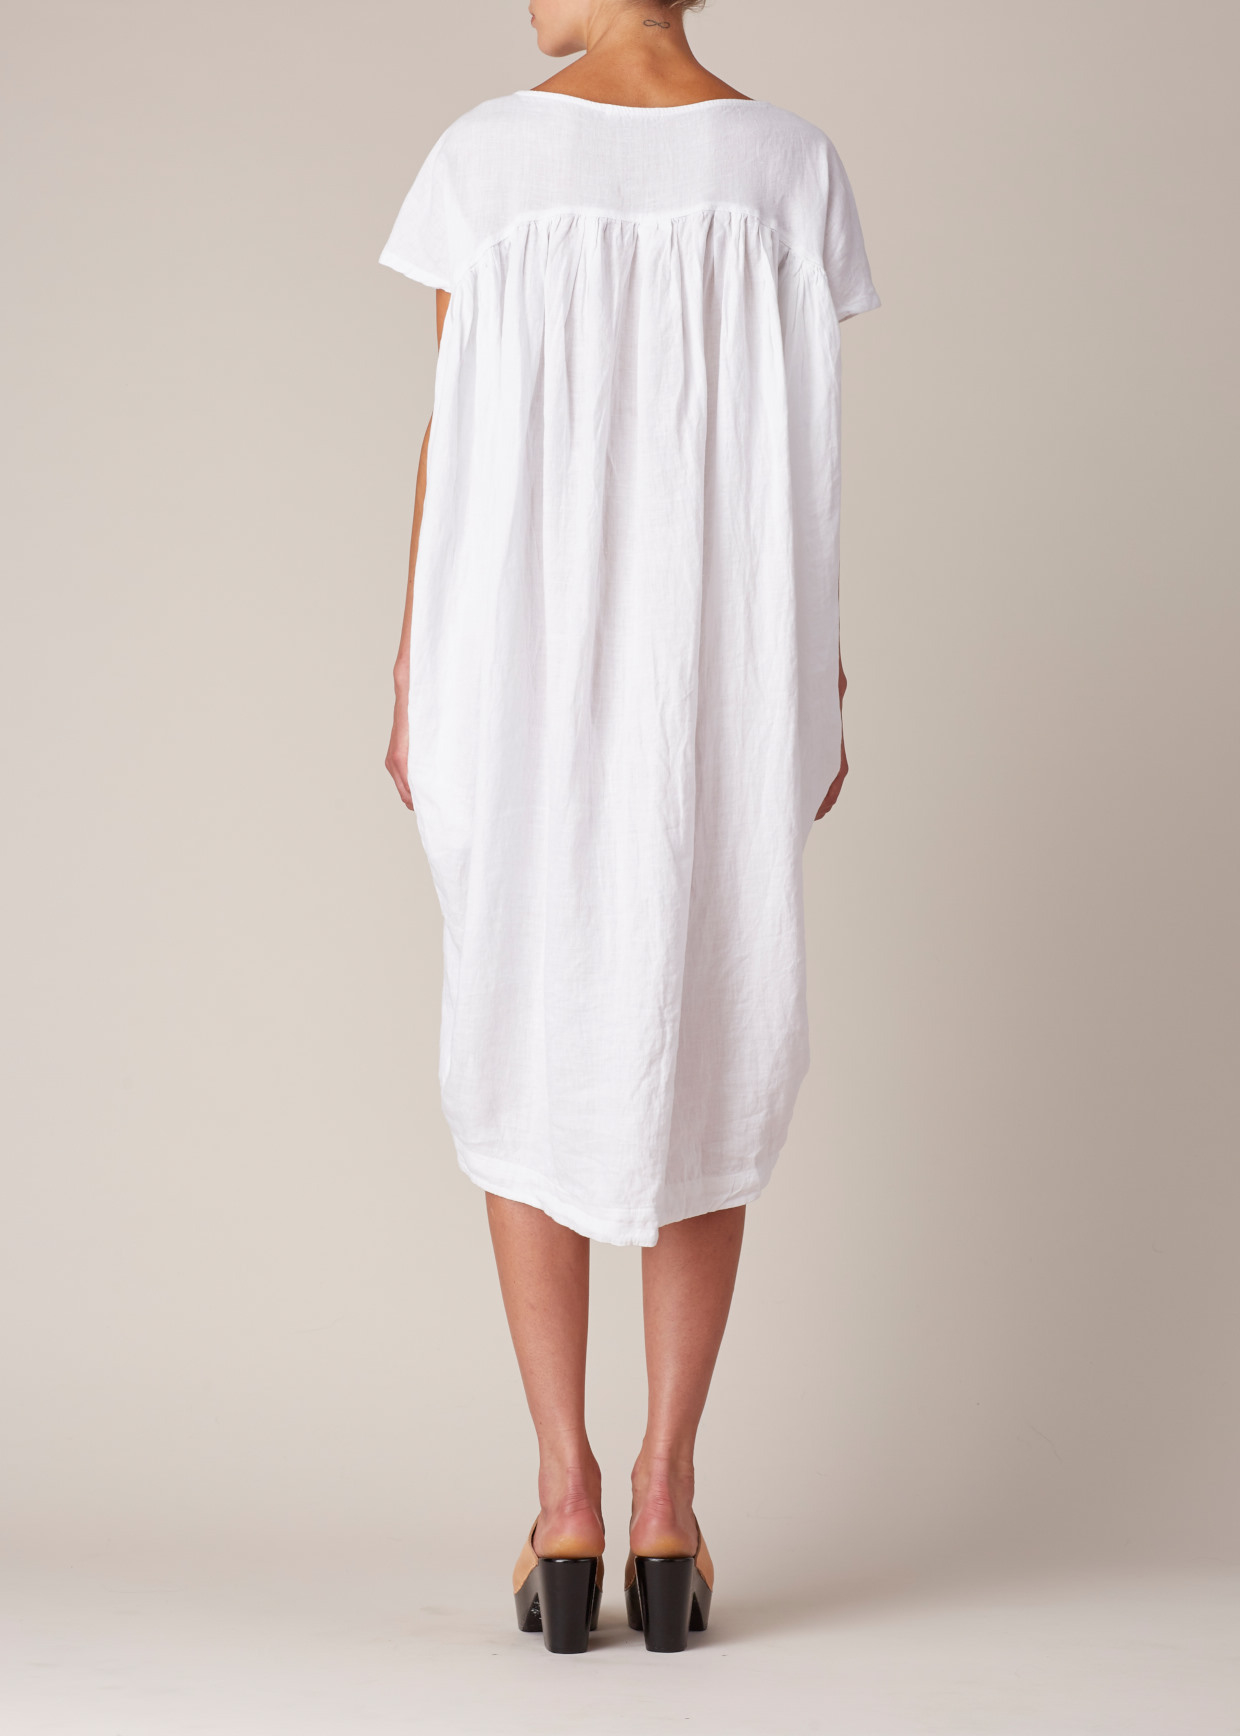 3a7213c6659 Black Crane White Cocoon Dress in White - Lyst